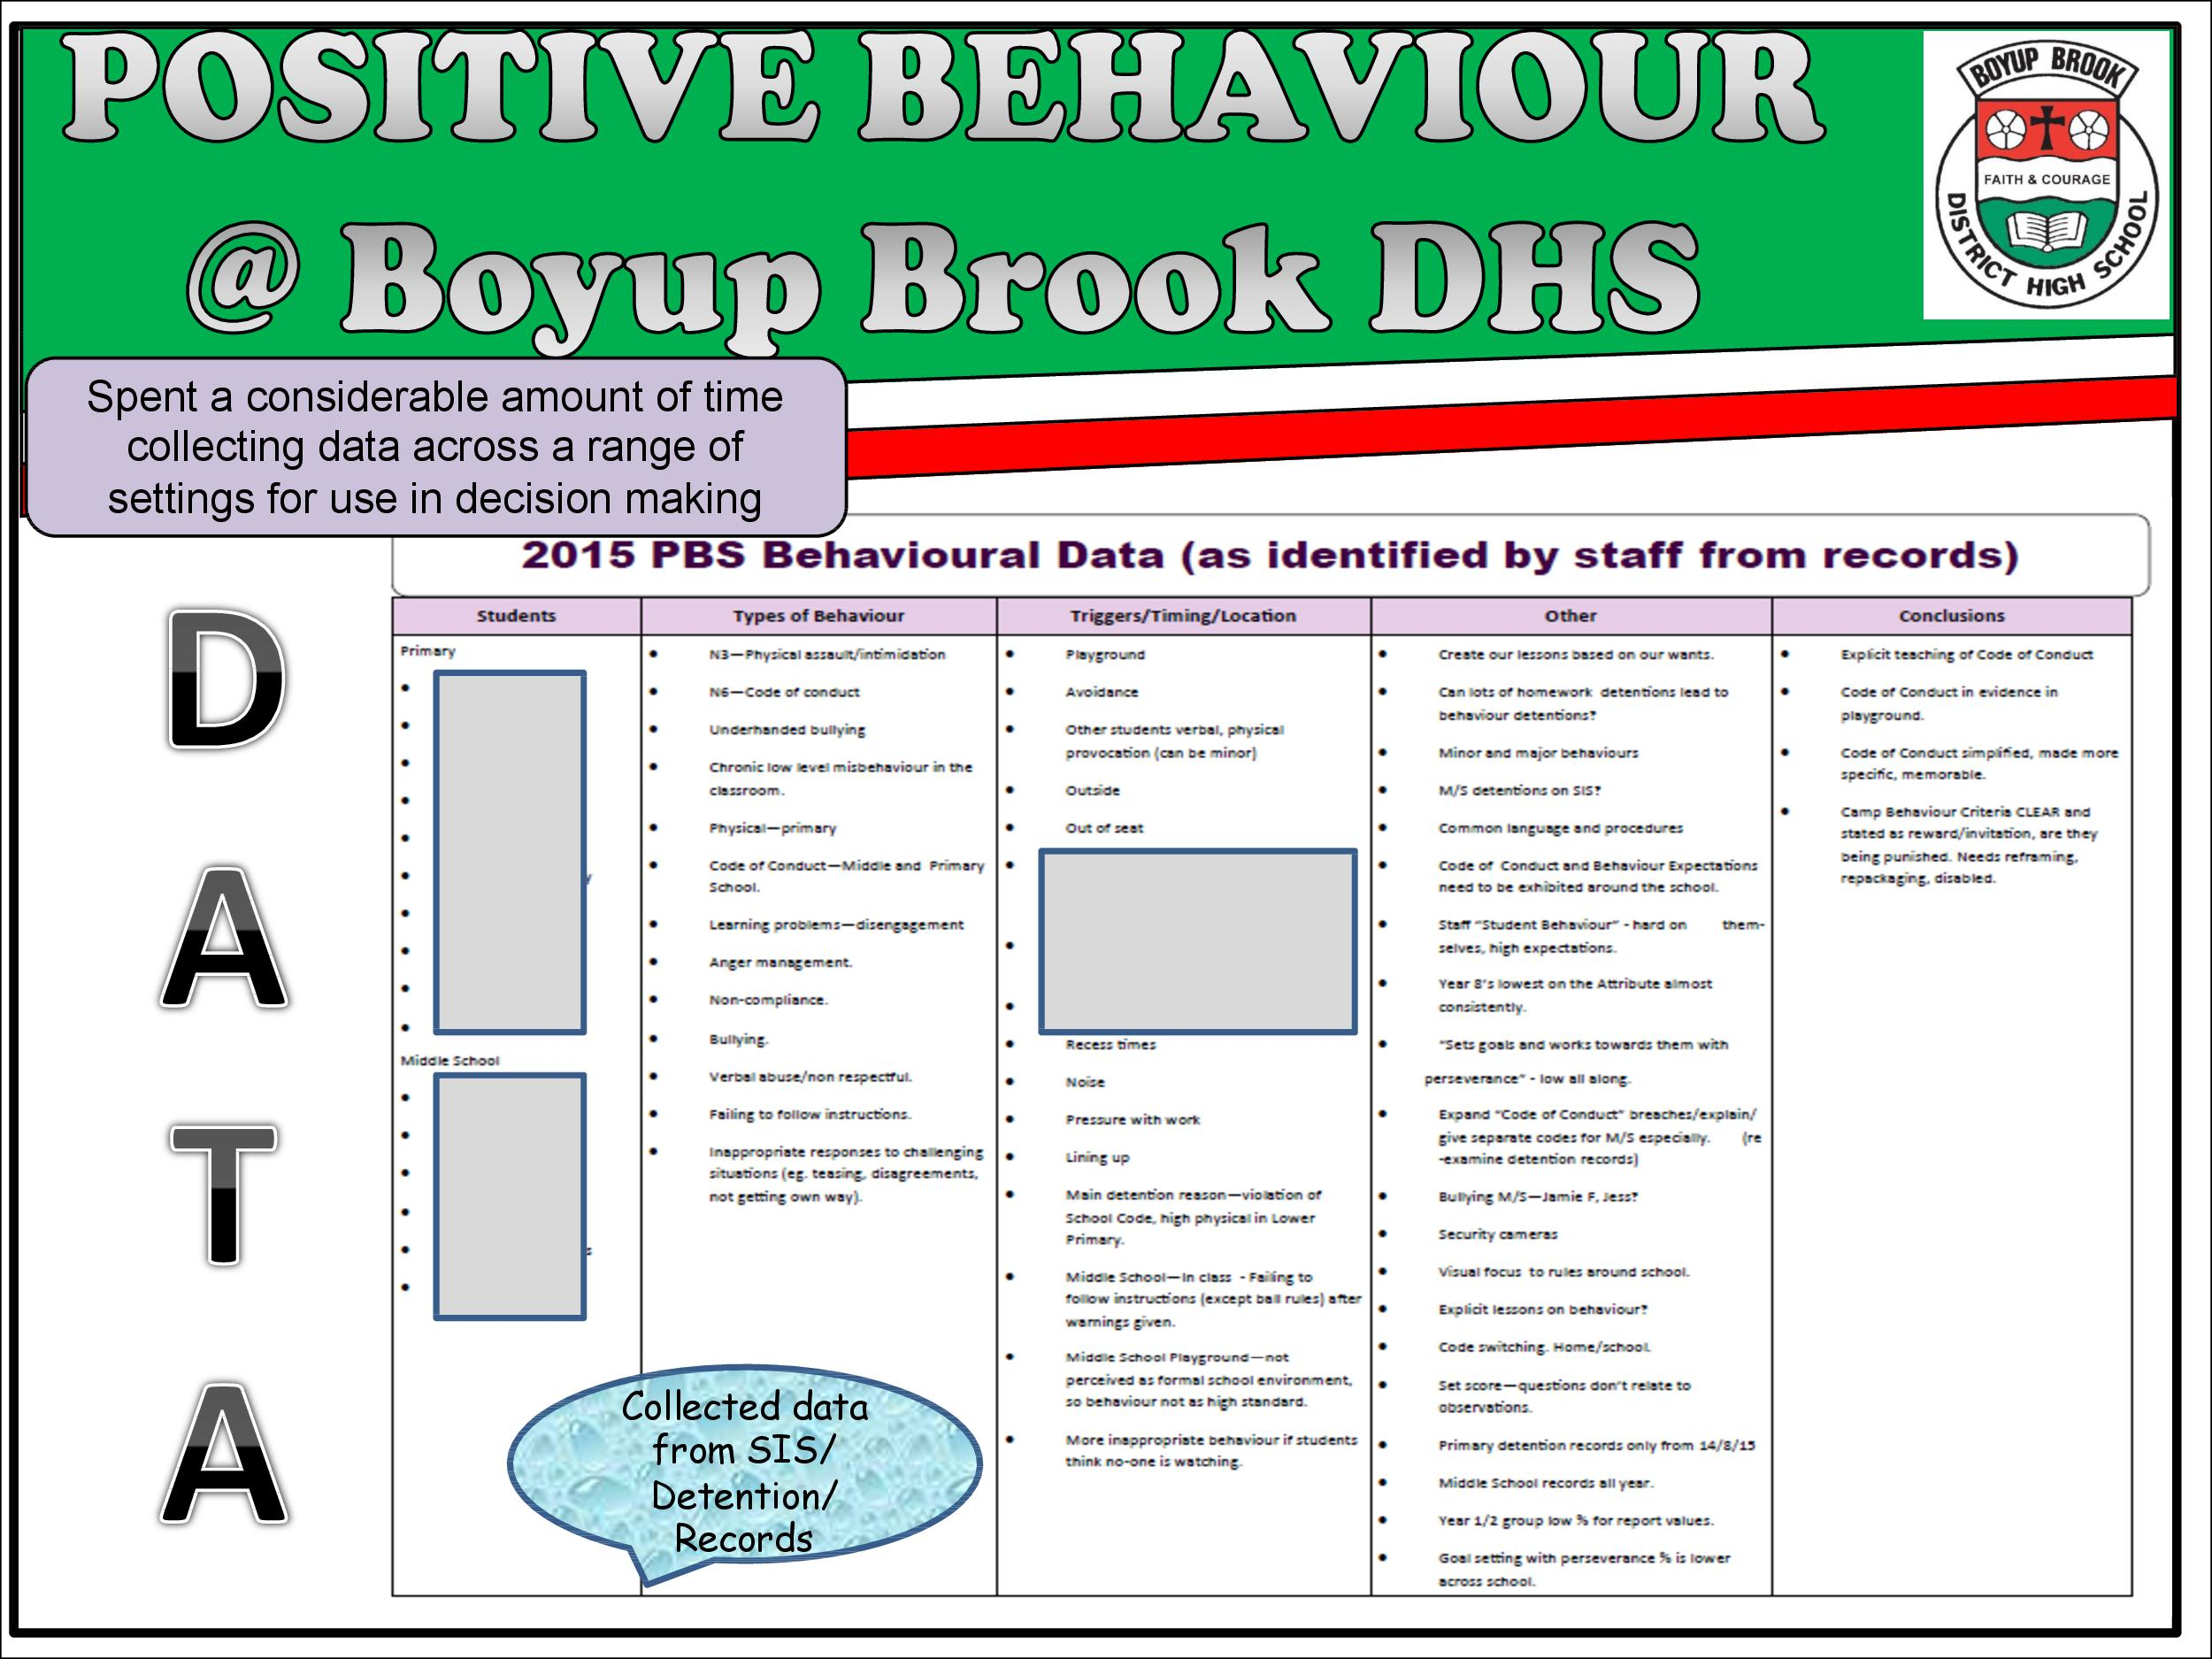 Positive Behaviour Support Page 7